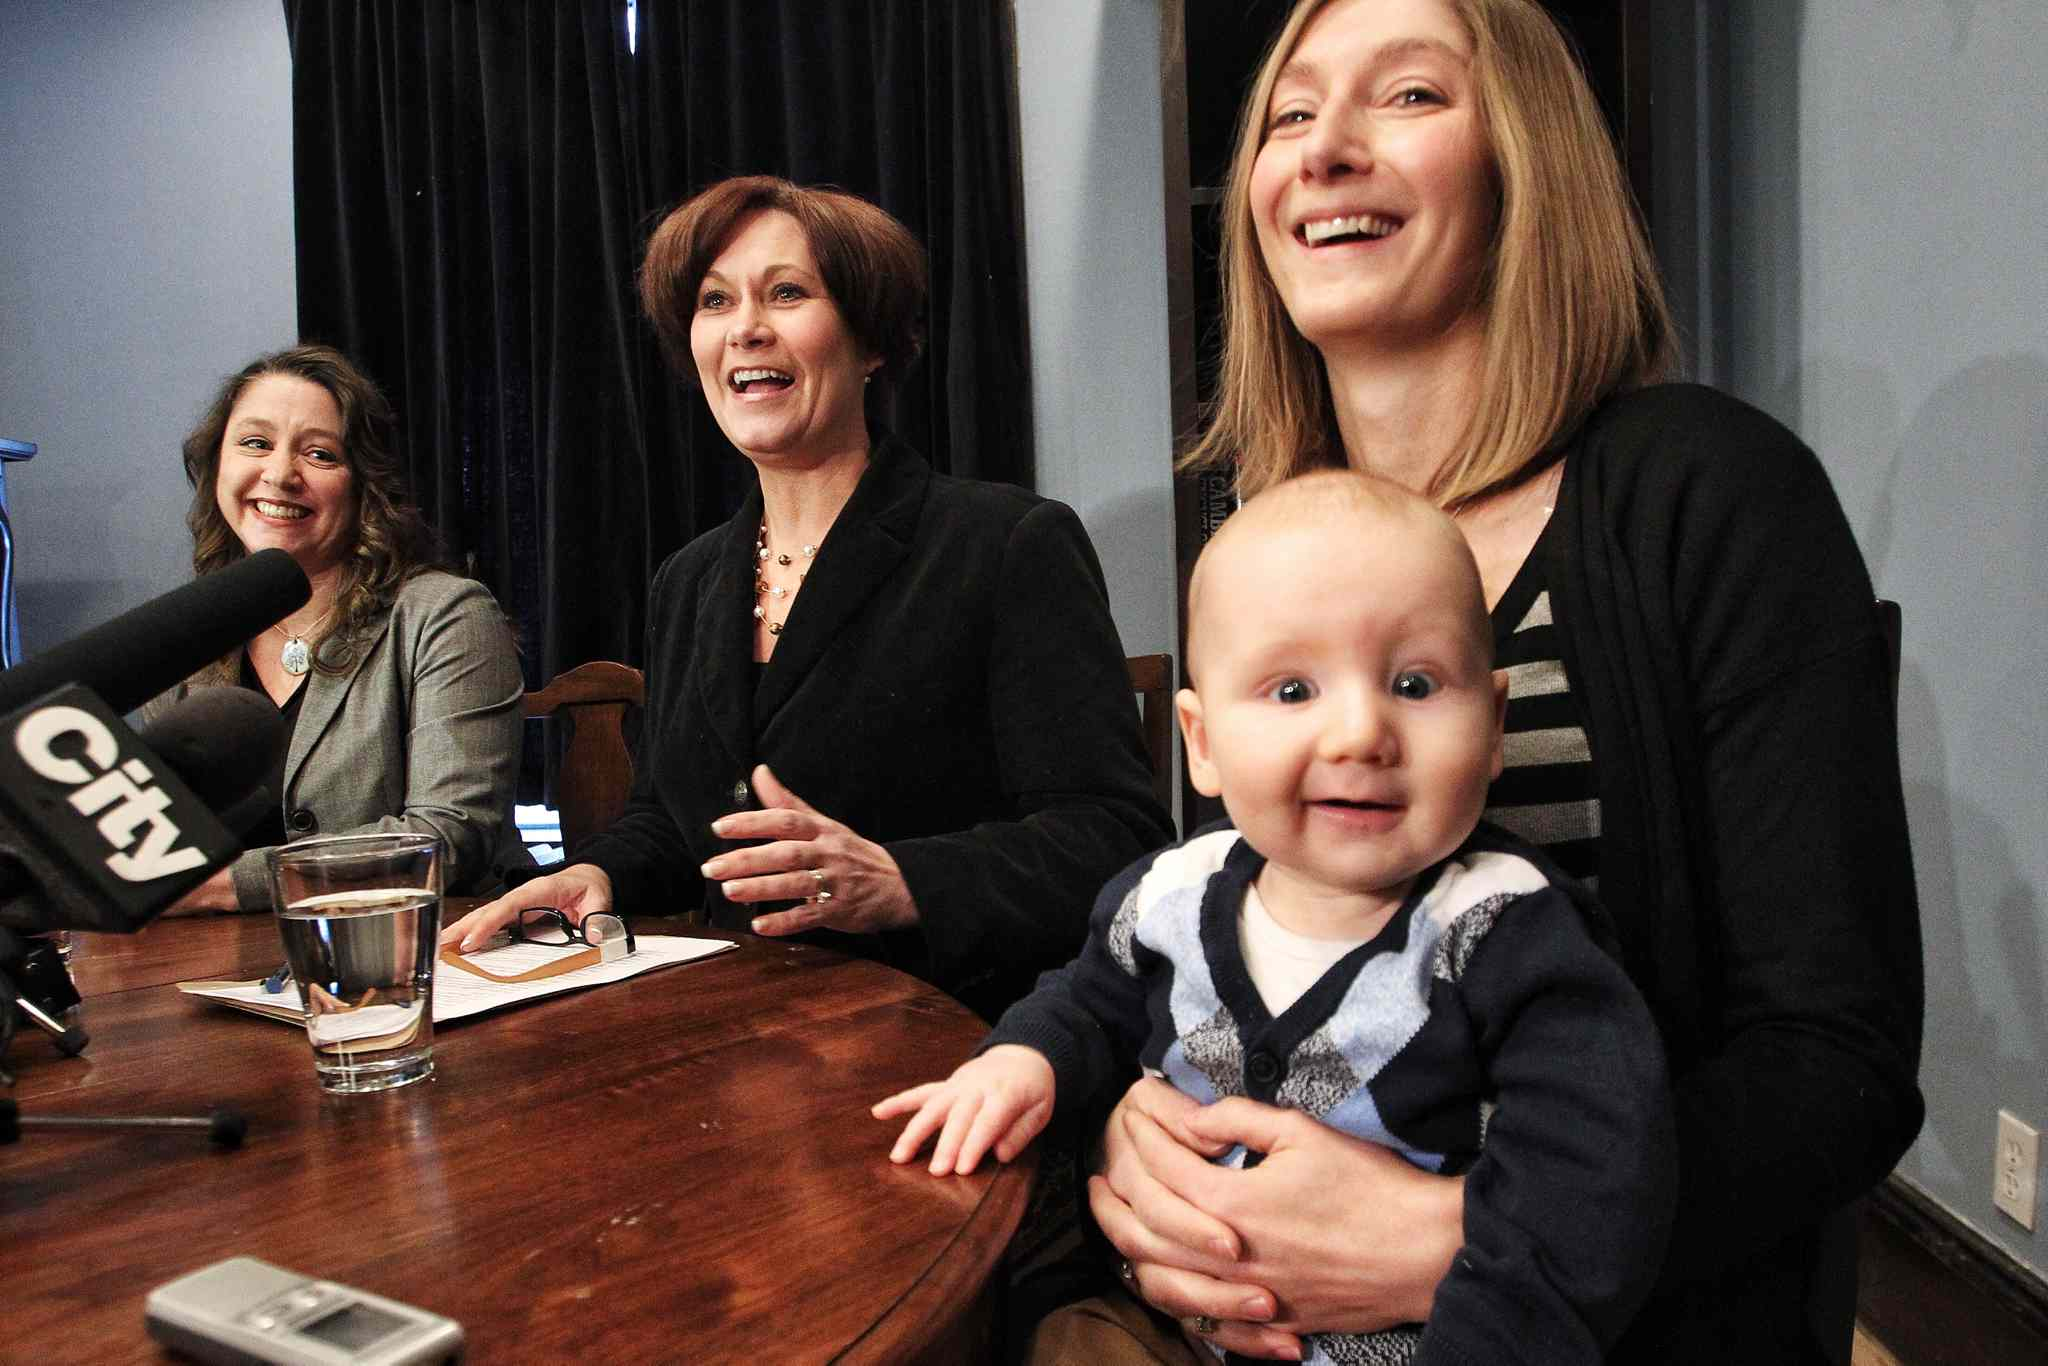 NDP leadership hopeful Theresa Oswald plans to hire more midwives and establish a breast-milk bank. Tracey Novoselnik of the Midwifery Association of Manitoba (left) and Katie Findlater, with son, Liam, attended the event to show their support.